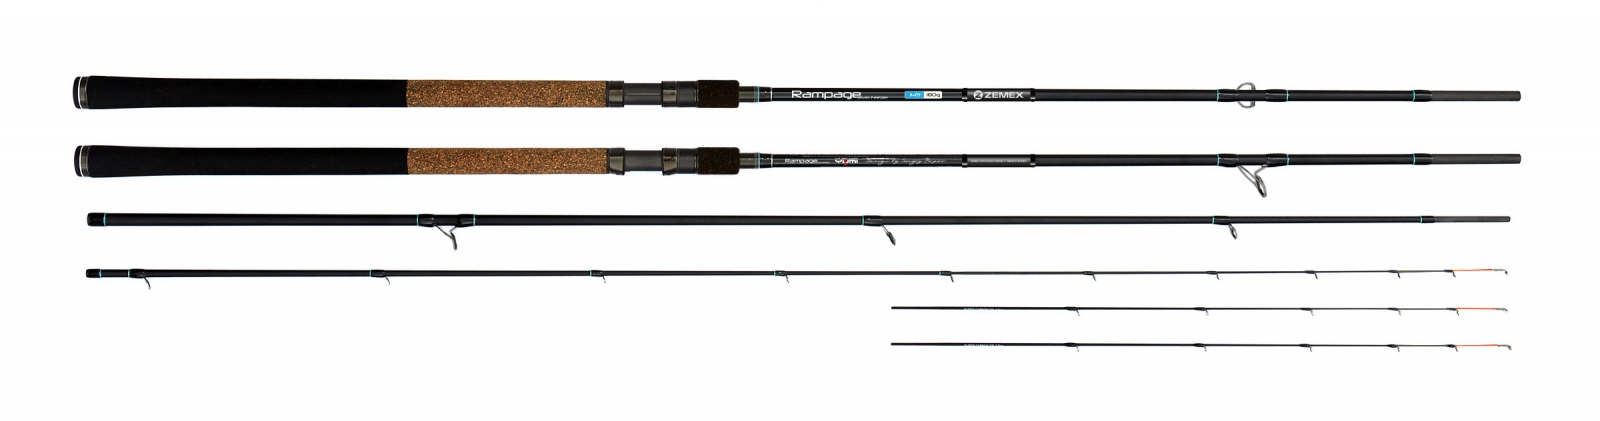 Фидер Zemex Rampage River Feeder 14ft 180g RRF-420-180